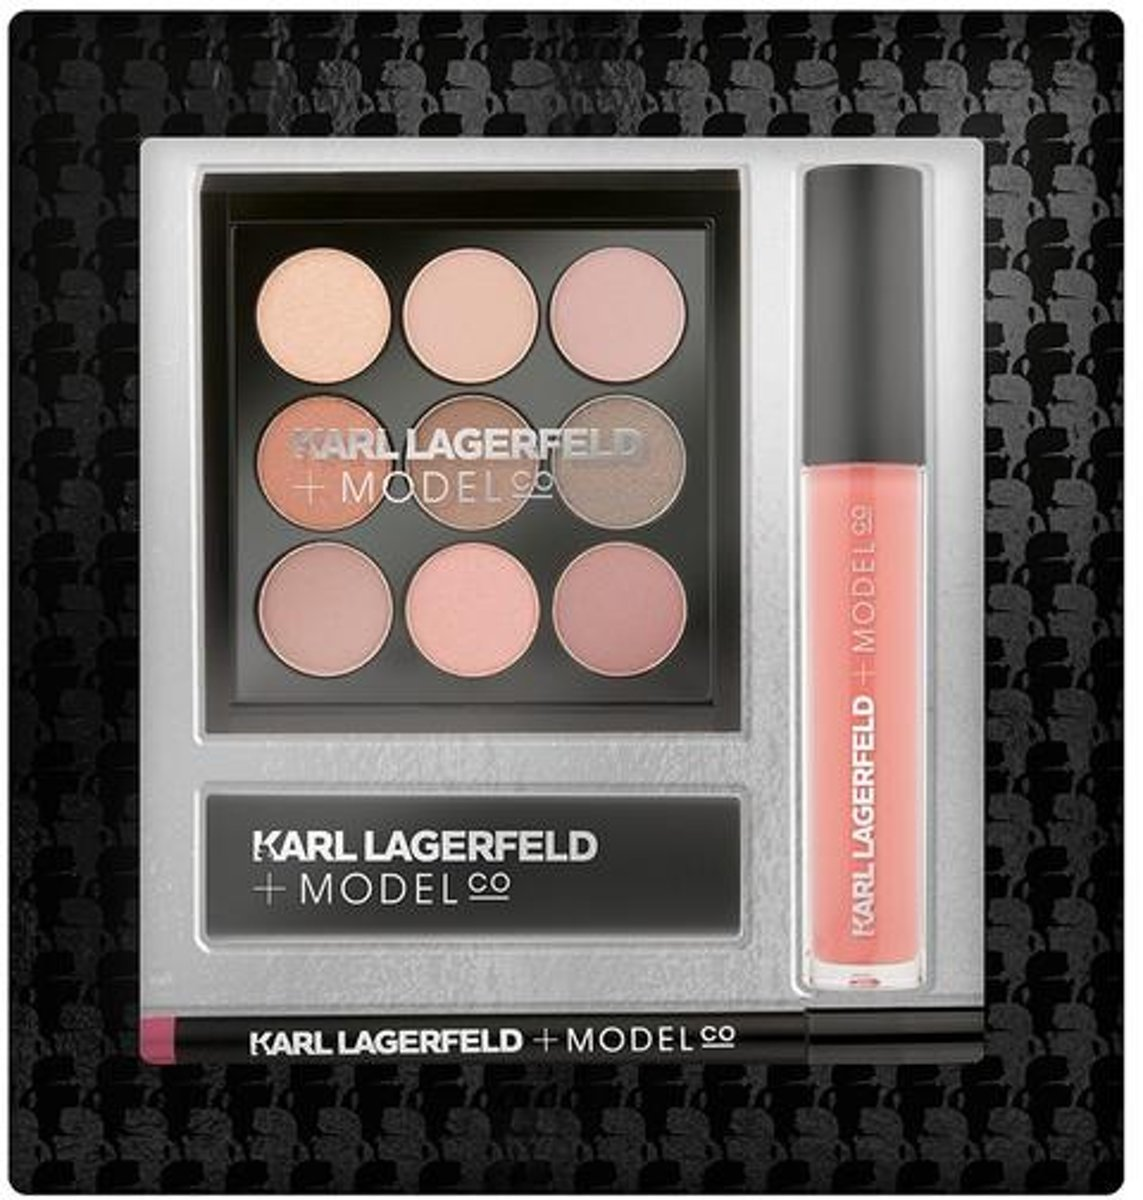 Karl Lagerfeld + Modelco - Runway Ready Gift Set